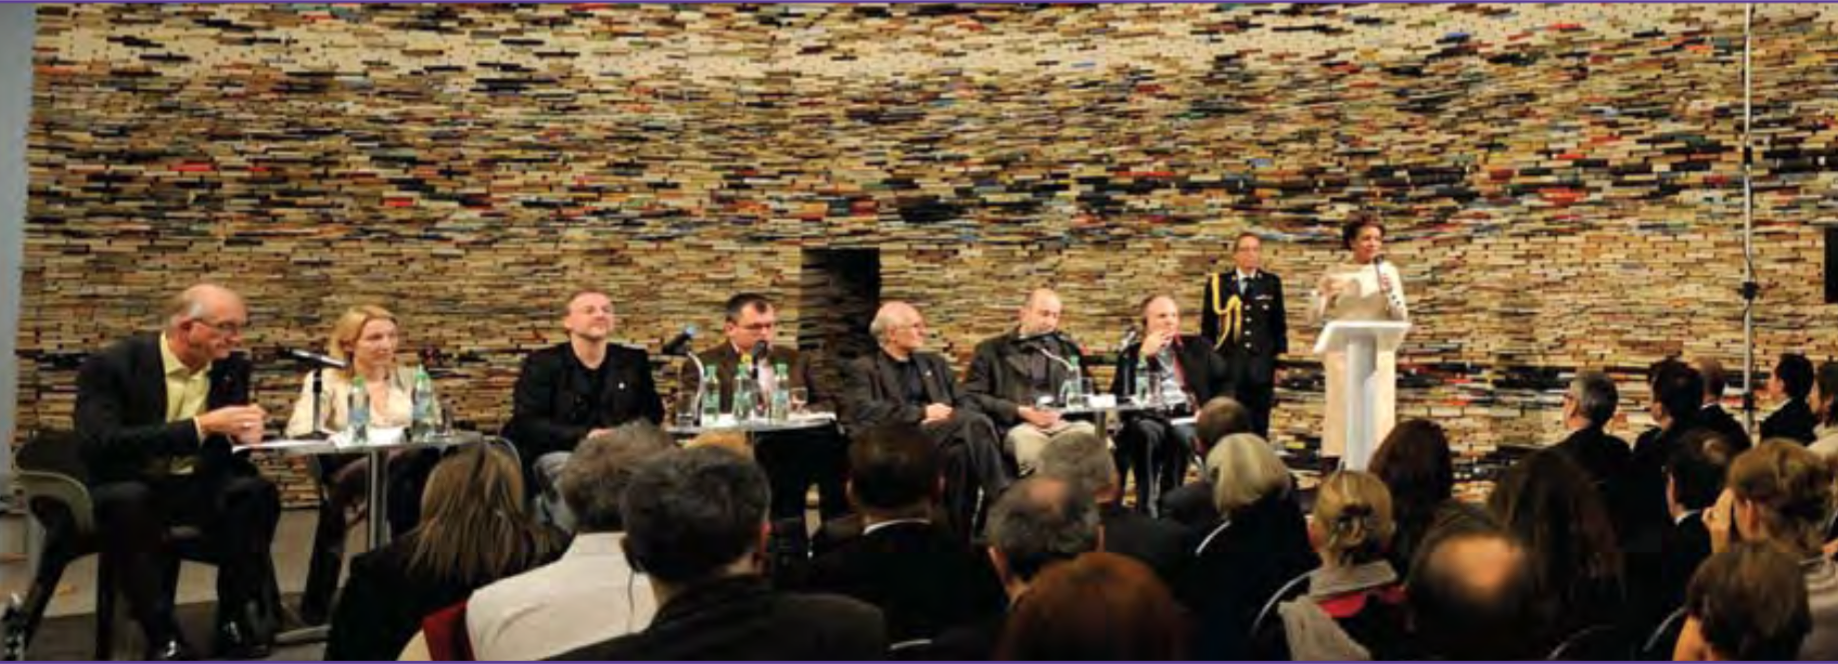 At La Fabrika Theatre, in Prague, His Excellency Jean-Daniel Lafond hosts an Art Matters forum to discuss the role of film and art in the promotion of political ideas and ideologies.  Art Matters, a series of forums, provides exciting opportunities to bring together artists, academics and administrators to observe and discuss the challenges related to culture in society. Over 30 Art Matters forums have been held in Canada and abroad.